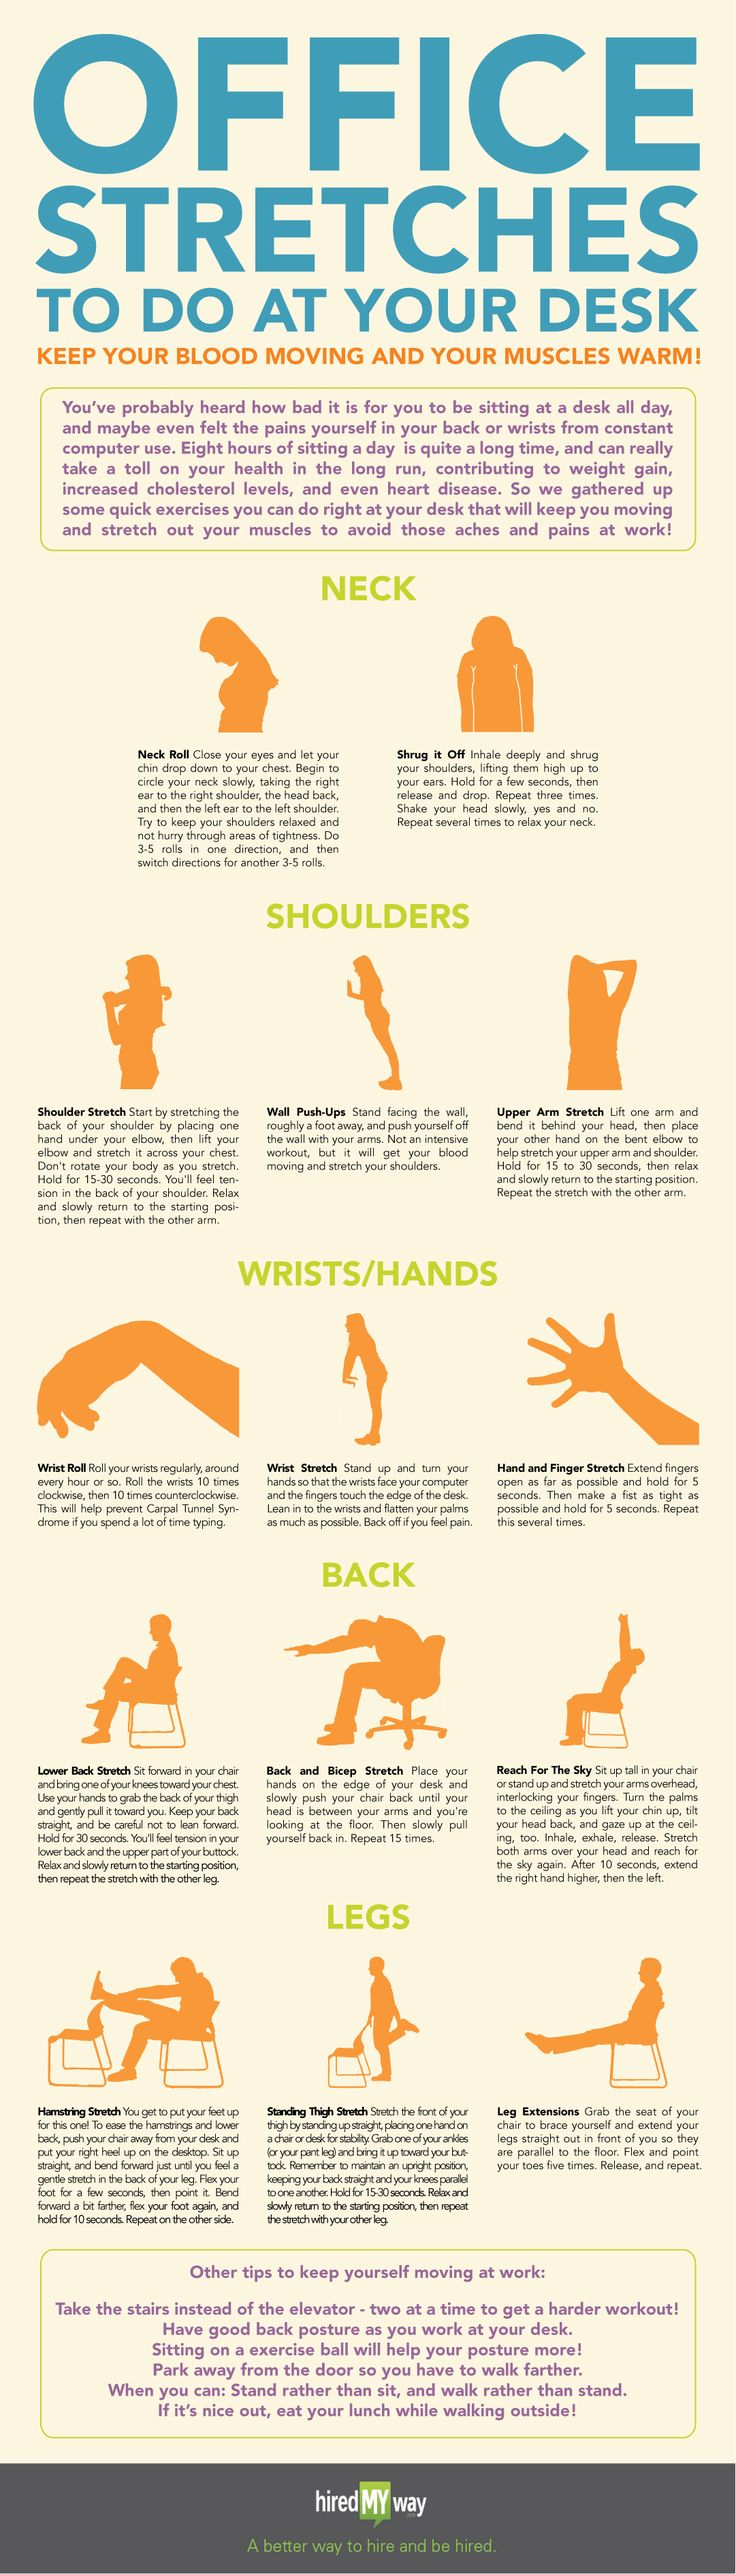 Best 25 Desk Exercises Ideas On Pinterest Office Yoga Stretches For Your Back And Flexibility